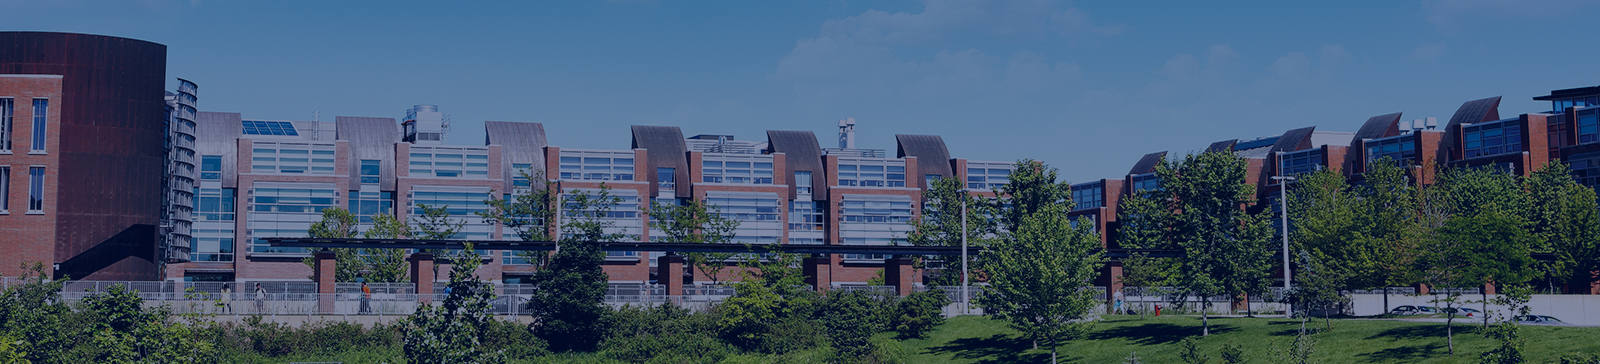 Image of Ontario Tech University